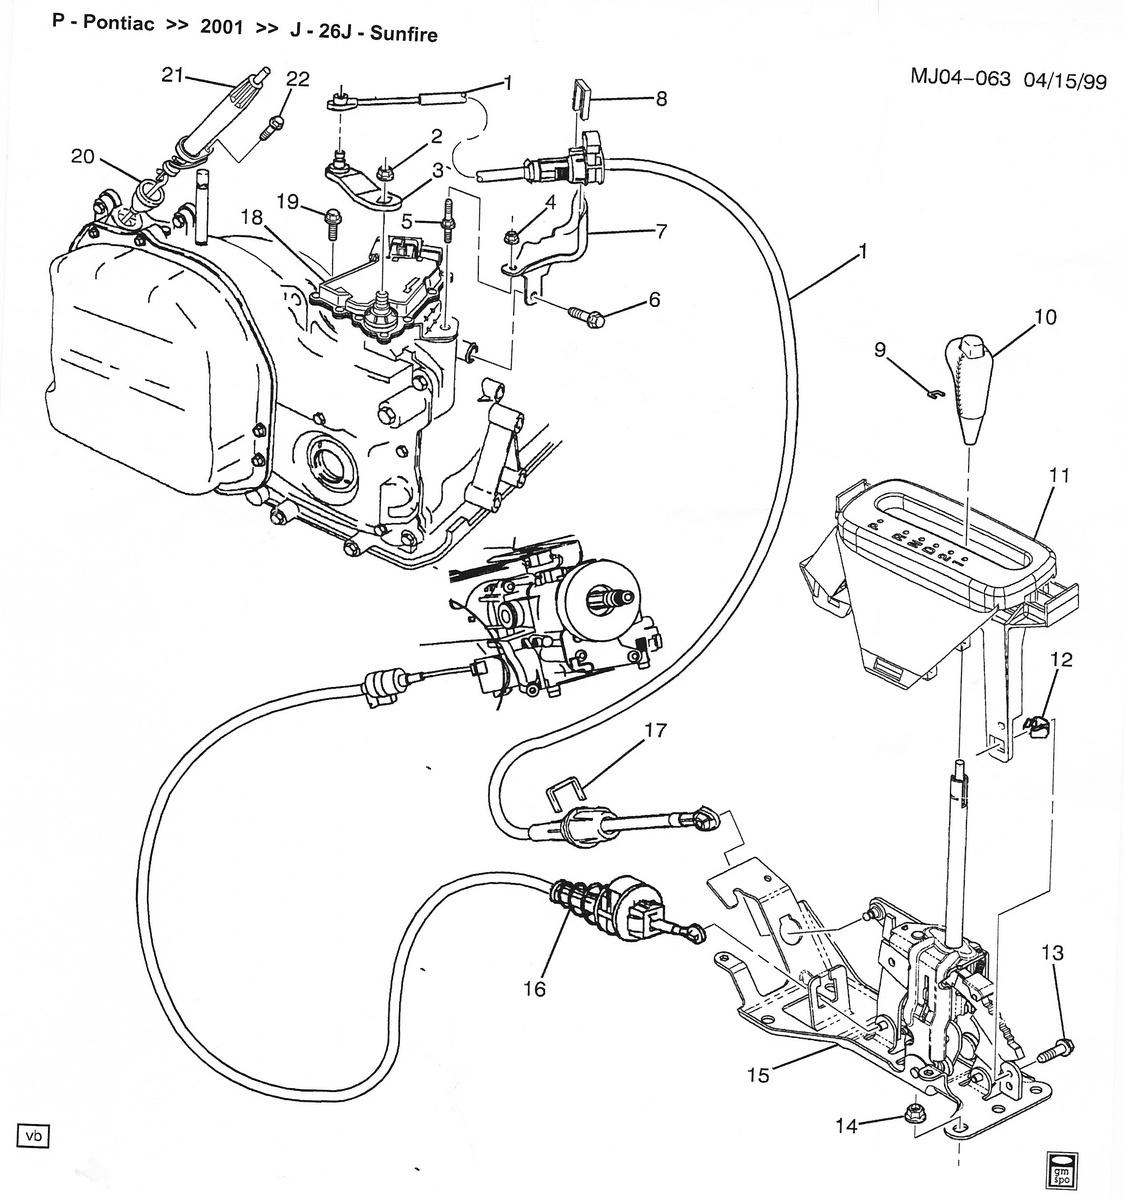 2001 Tahoe Engine Diagram Wiring Library Chevy Door 2002 Chevrolet Cavalier Questions How To Repair My Shifter Linkage Rh Cargurus Com 1999 Parts